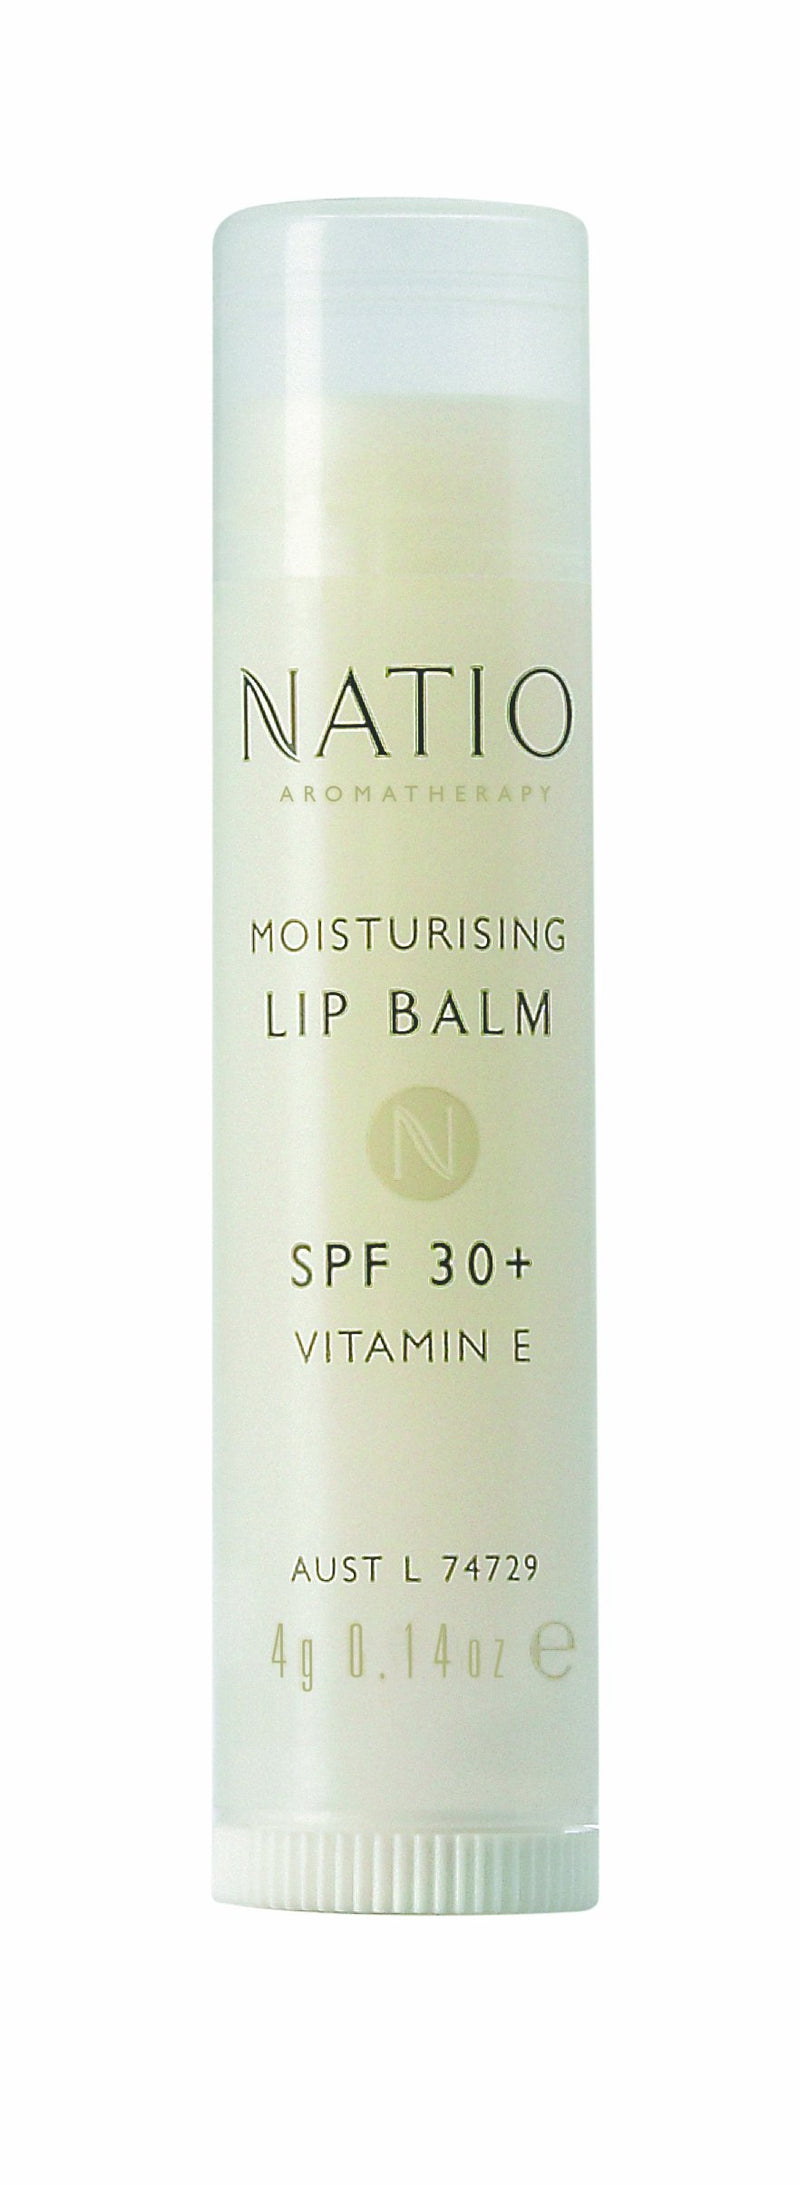 NATIO Moist Lip Balm SPF30+